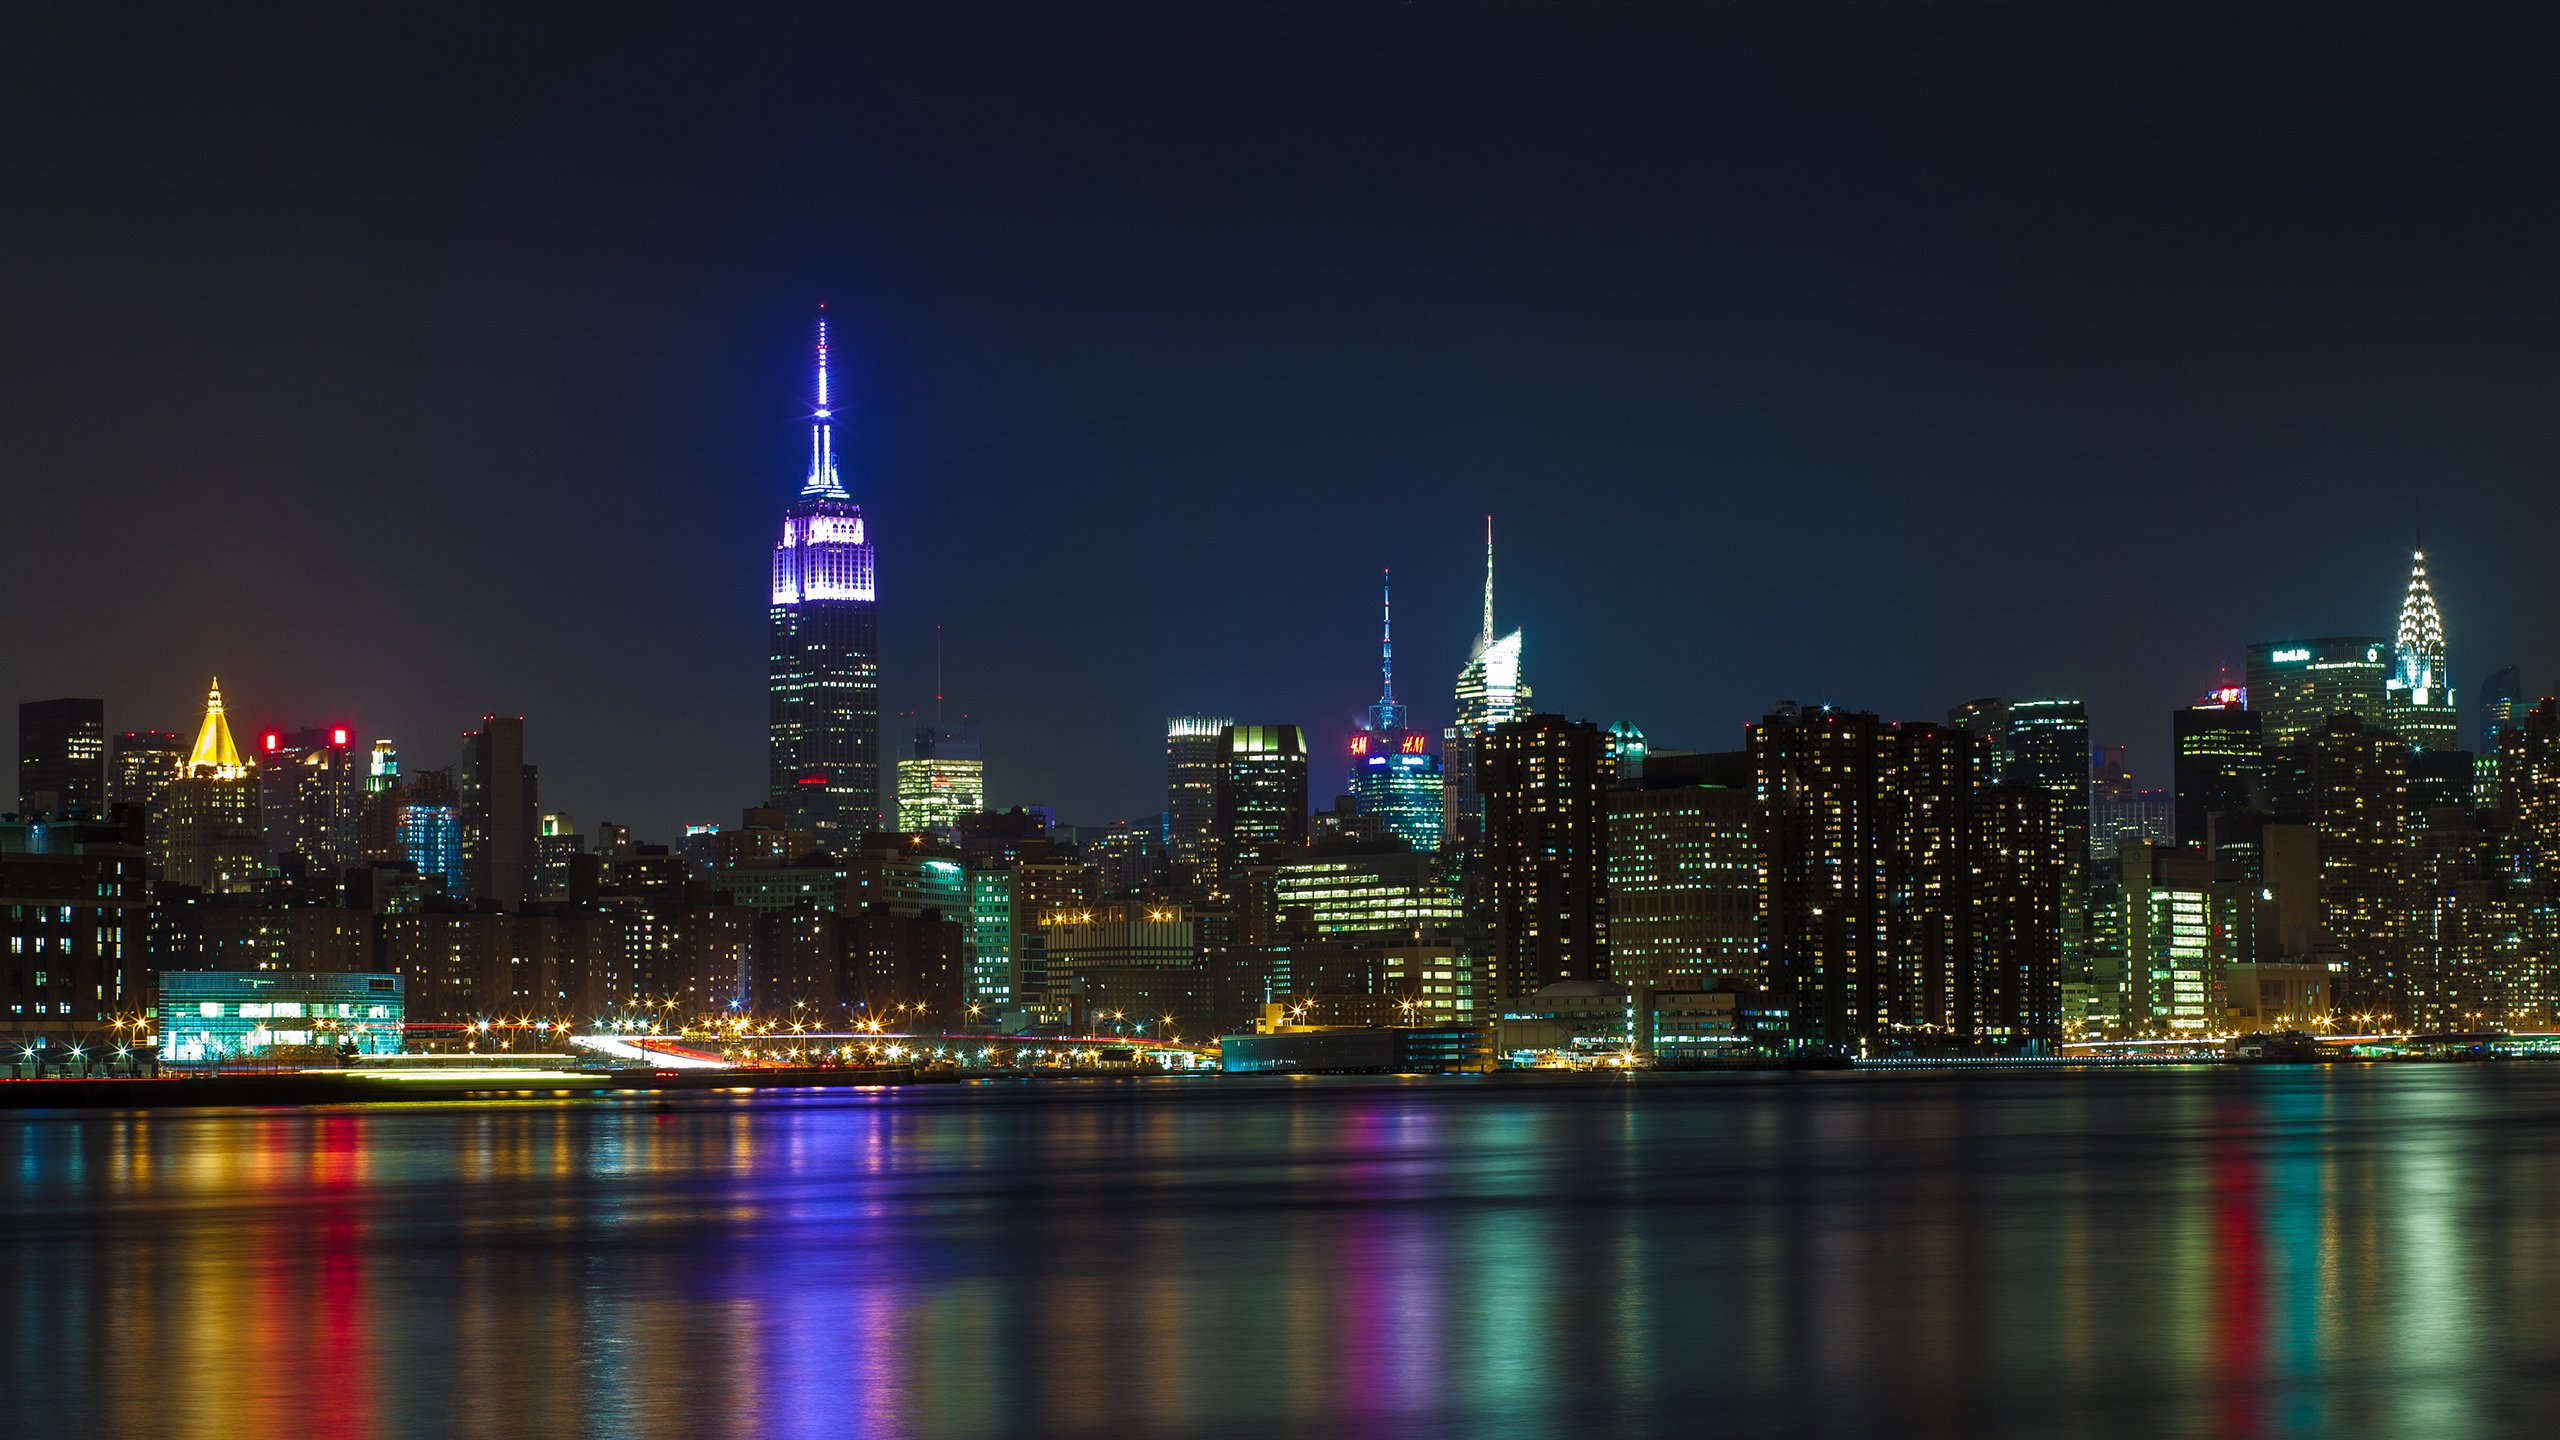 New York at Night Wallpaper images 2560x1440